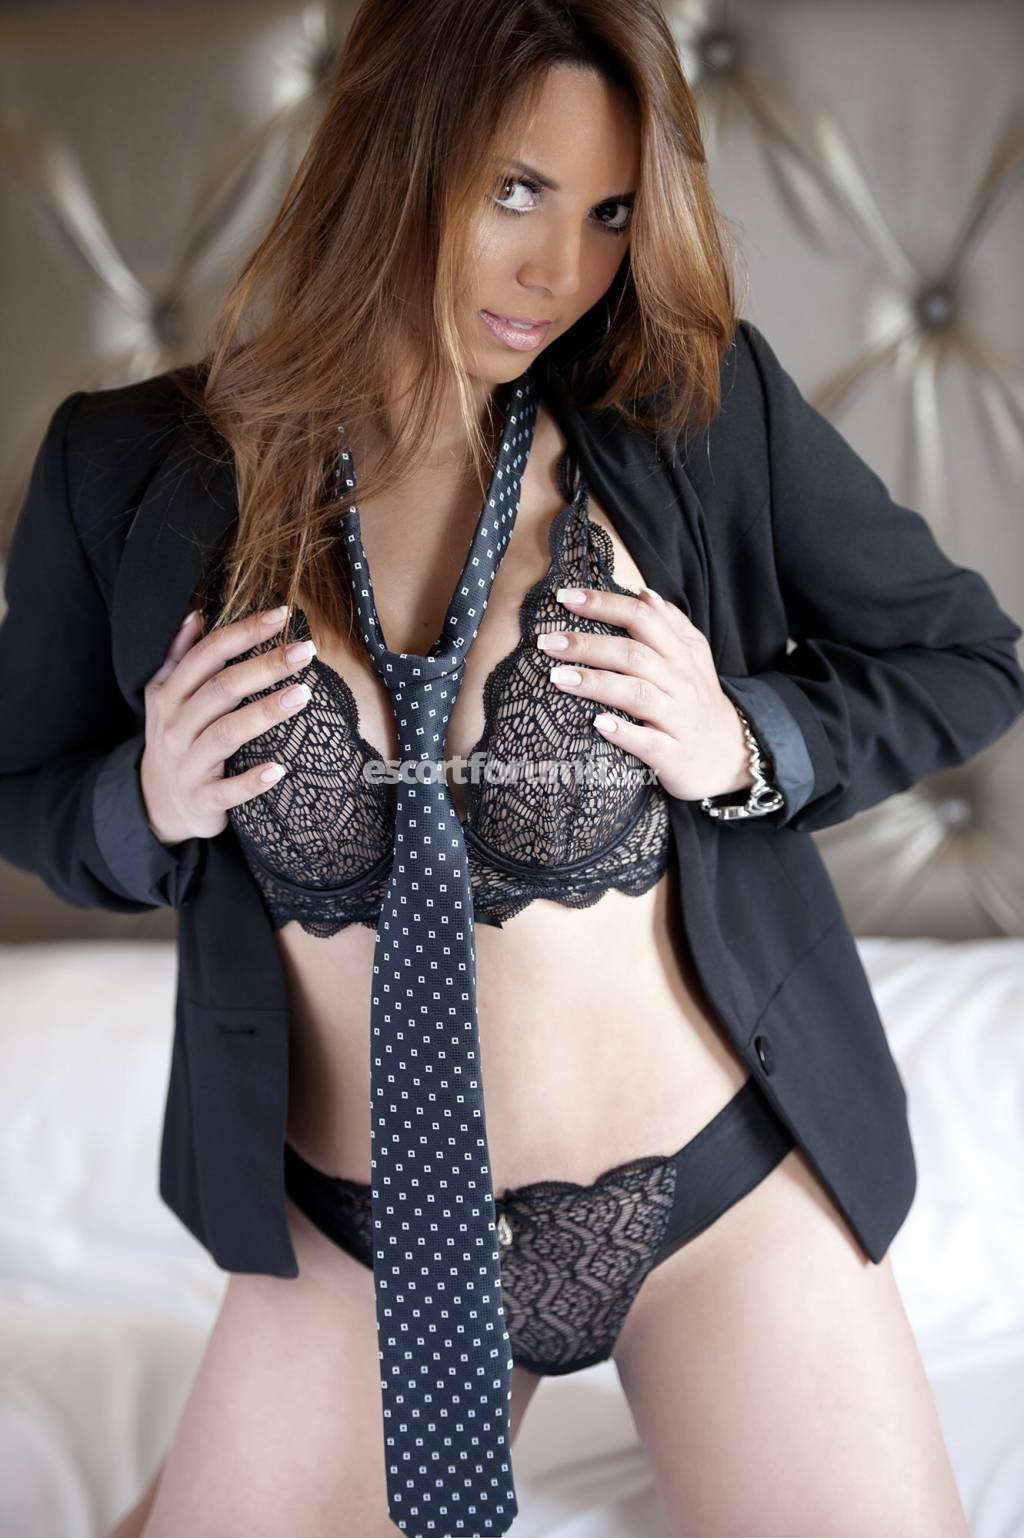 escort forum lucca escort a latina